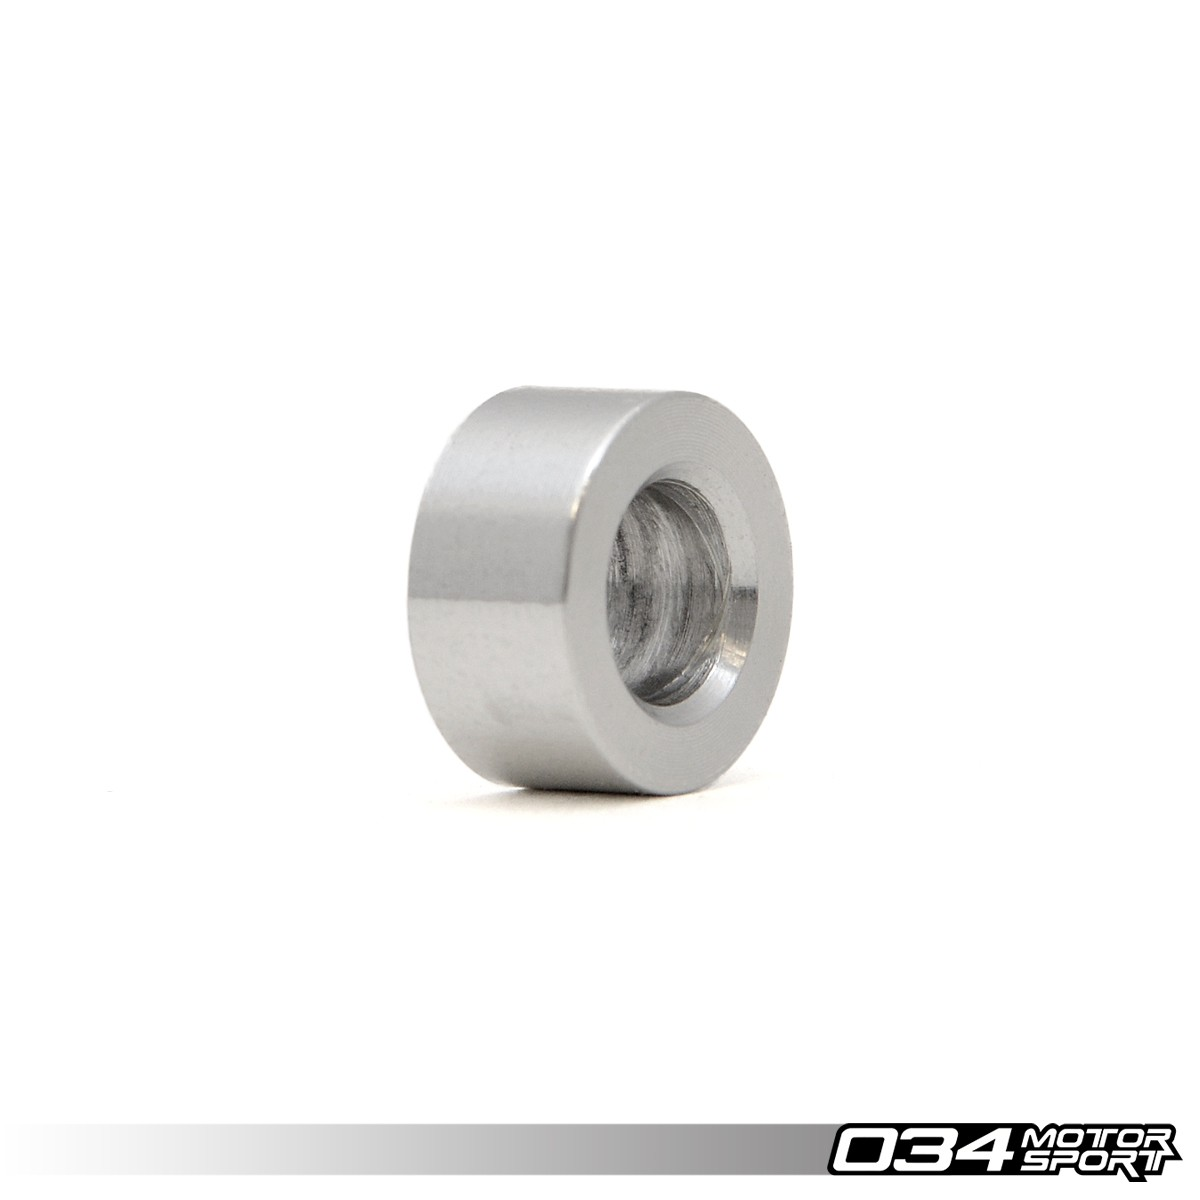 Spacer, Fuel Rail, 6mm thick 1.8t, 2.7t and Others   034-106-7021